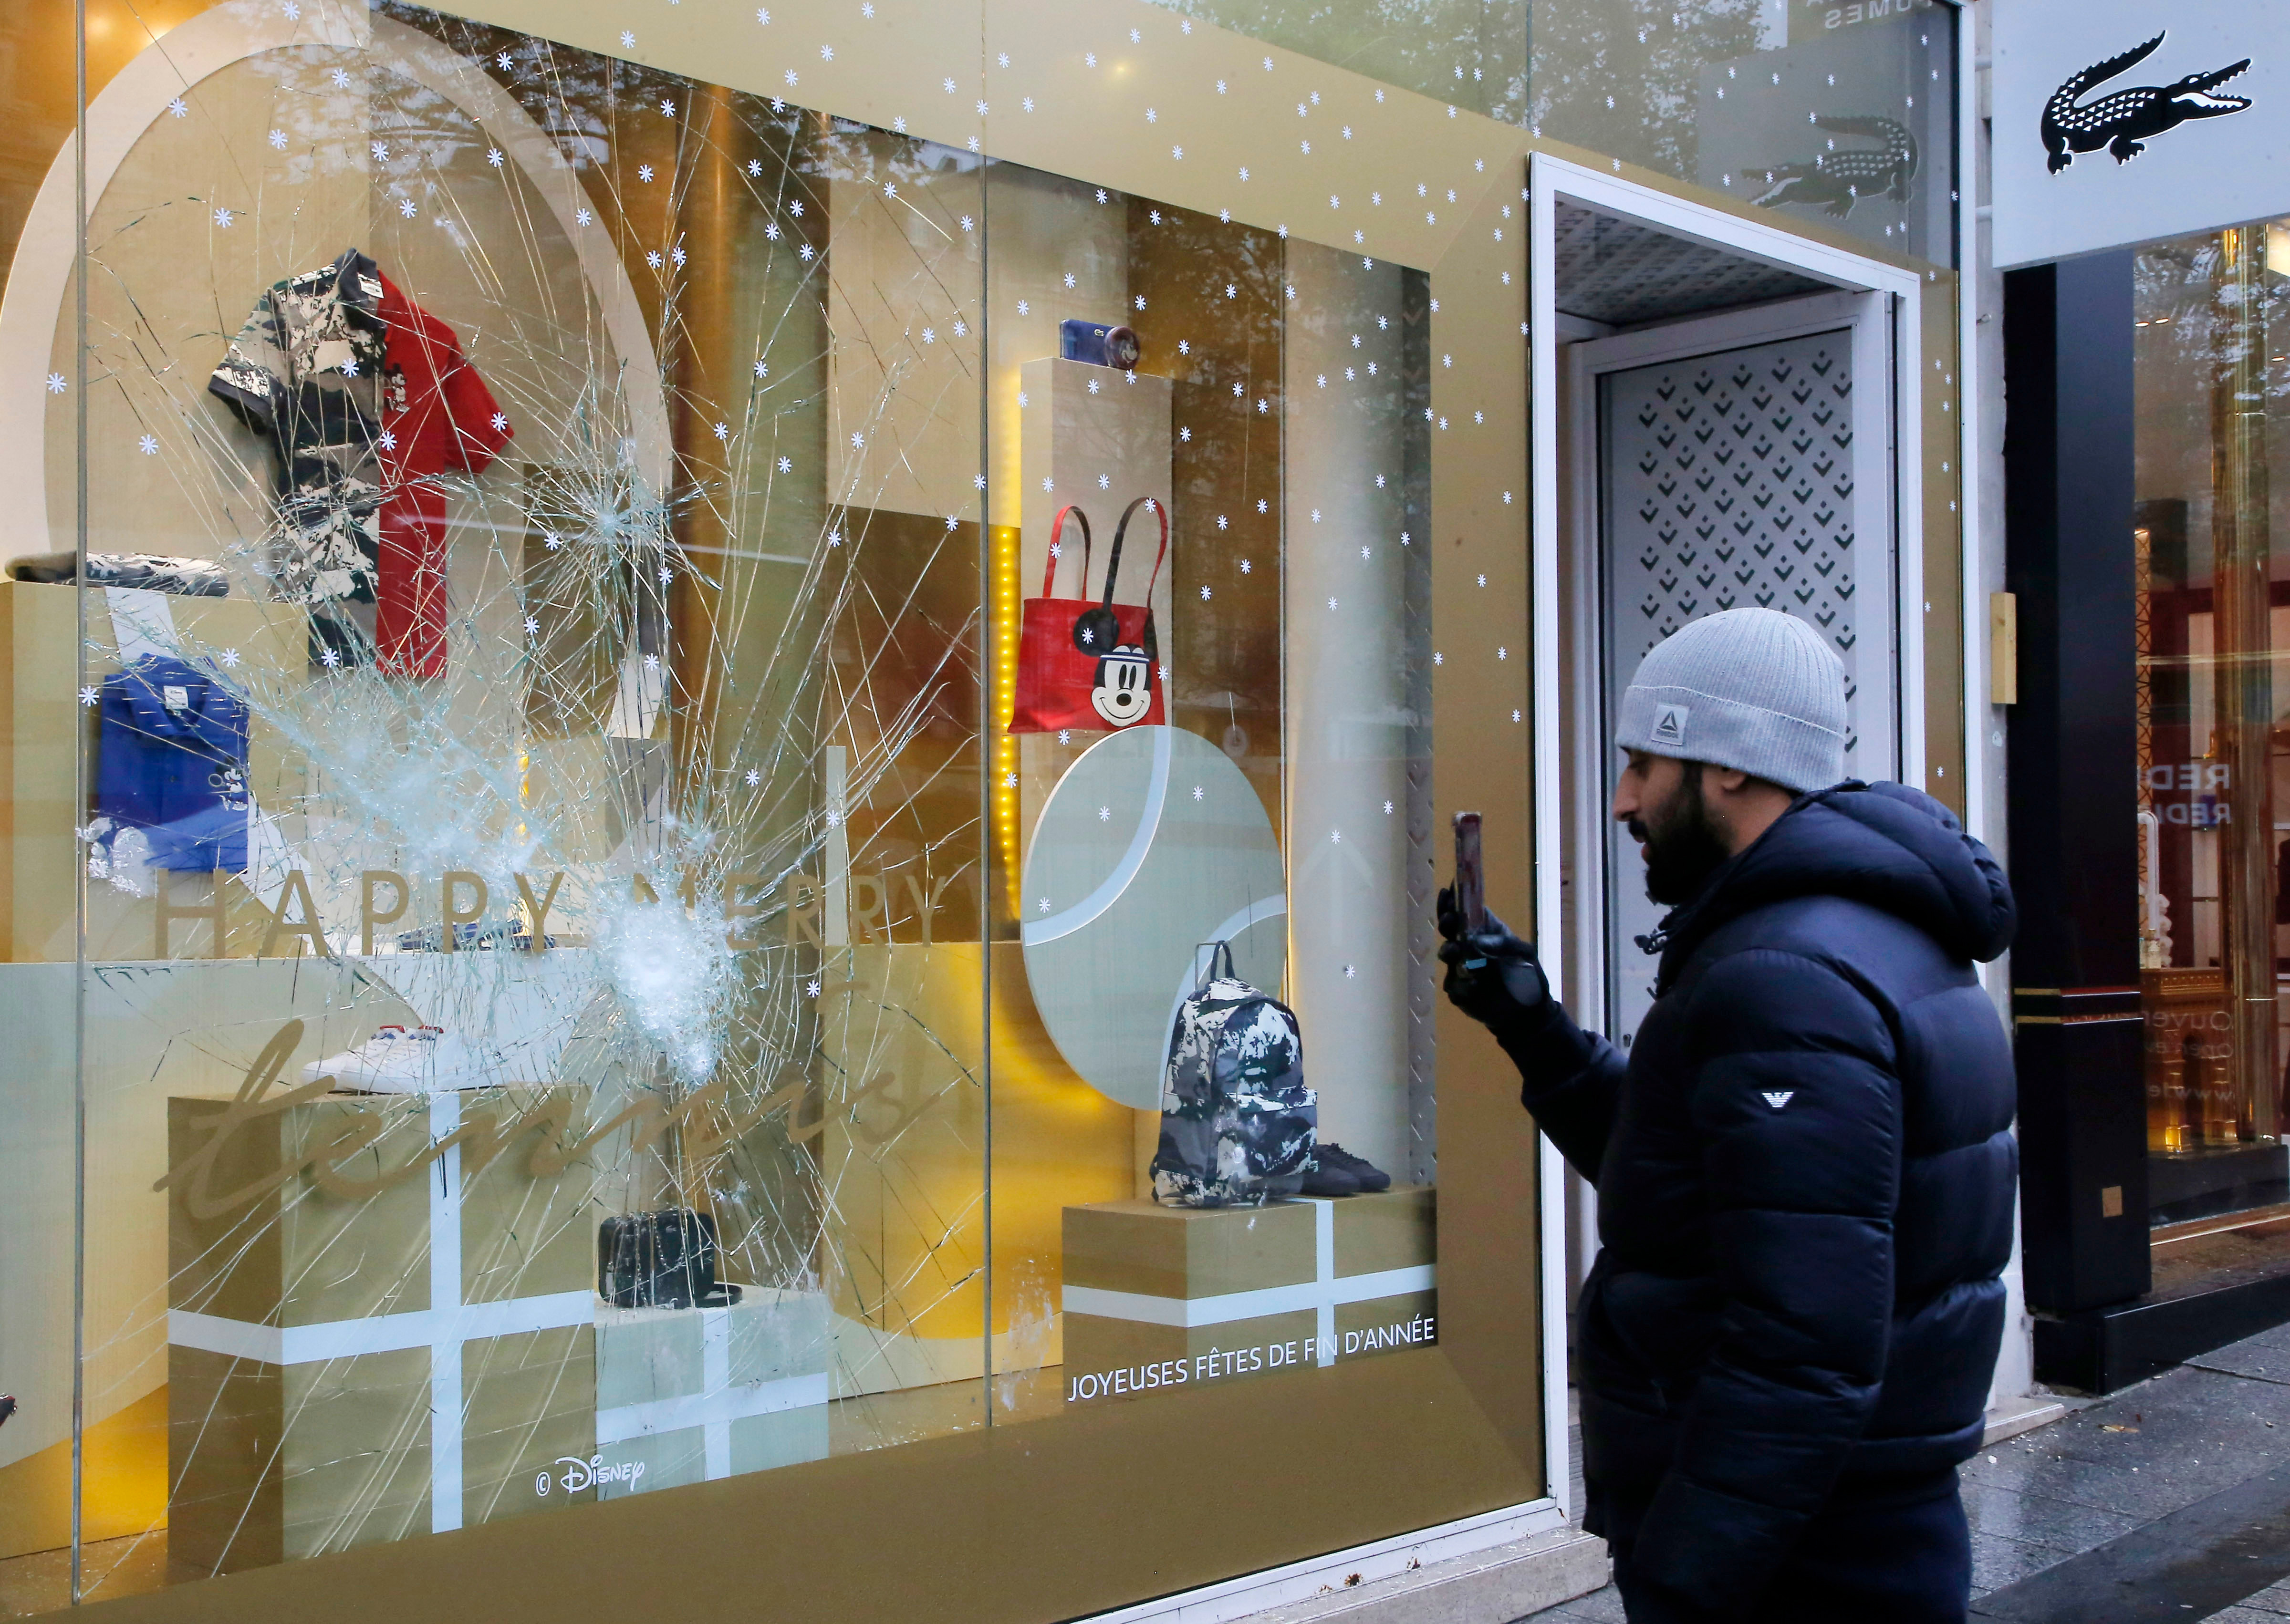 A man takes a photograph with his mobile phone of a smashed window at the Champs Elysees avenue in Paris, France, in the aftermath of a protest against the rising of the fuel taxes. French President Emmanuel Macron has condemned violence by protesters at demonstrations against rising fuel taxes and his governmentGas Price Protests Aftermath, Paris, France - 25 Nov 2018